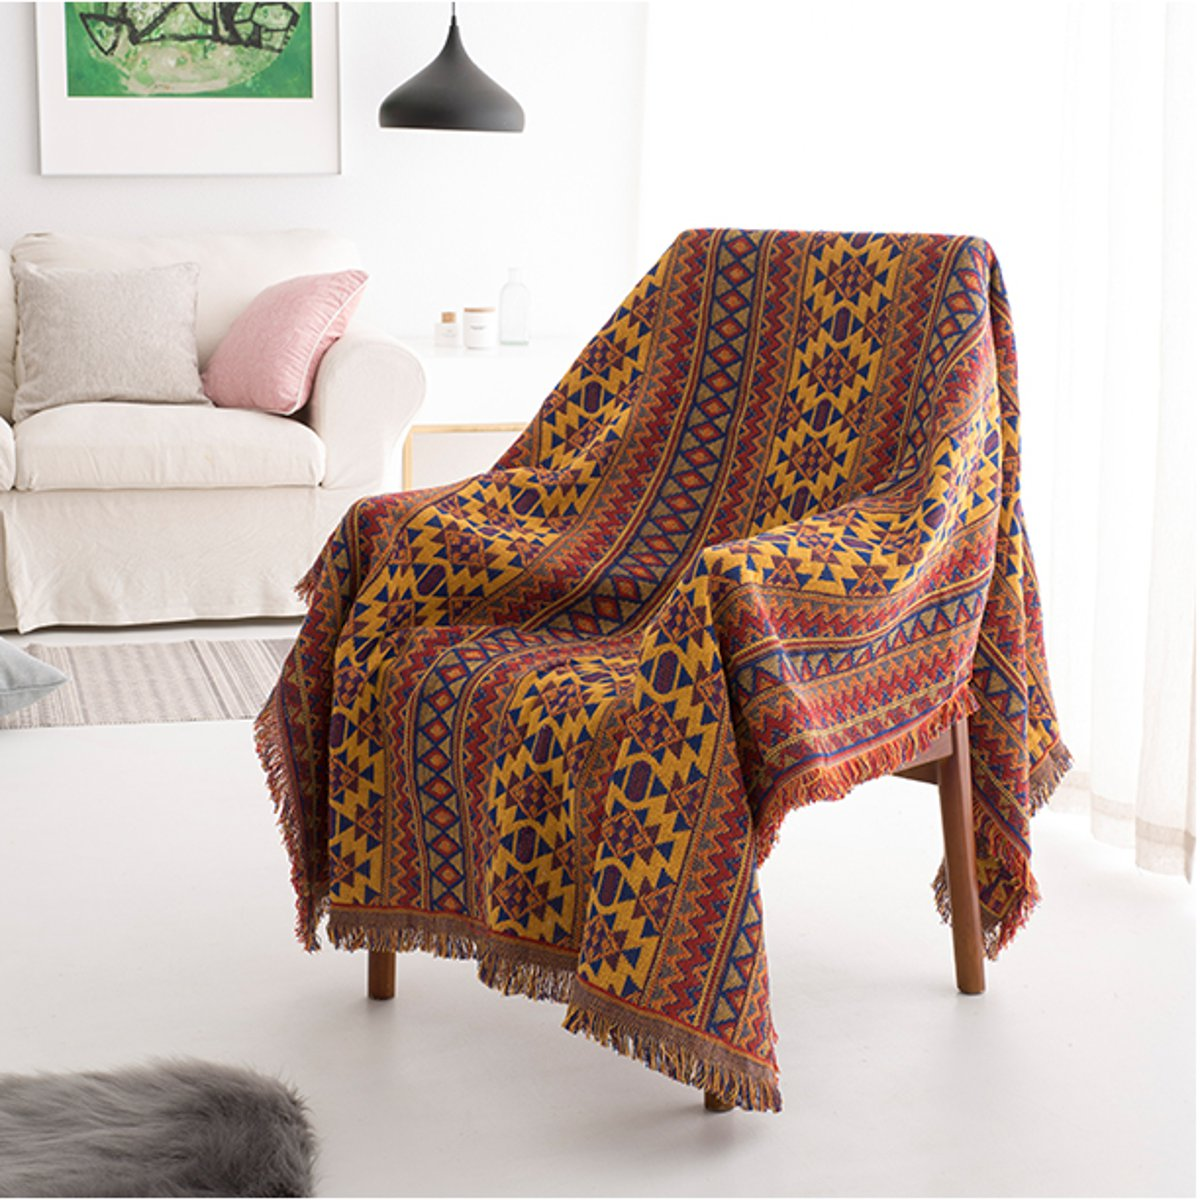 Lounge Throw Us 34 79 49 Off Cotton Bohemian Throw Blanket Boho Rug Couch Lounge Sofa Chair Bedding Blankets Towel Home Hotel Decoration Textiles 240x90cm In